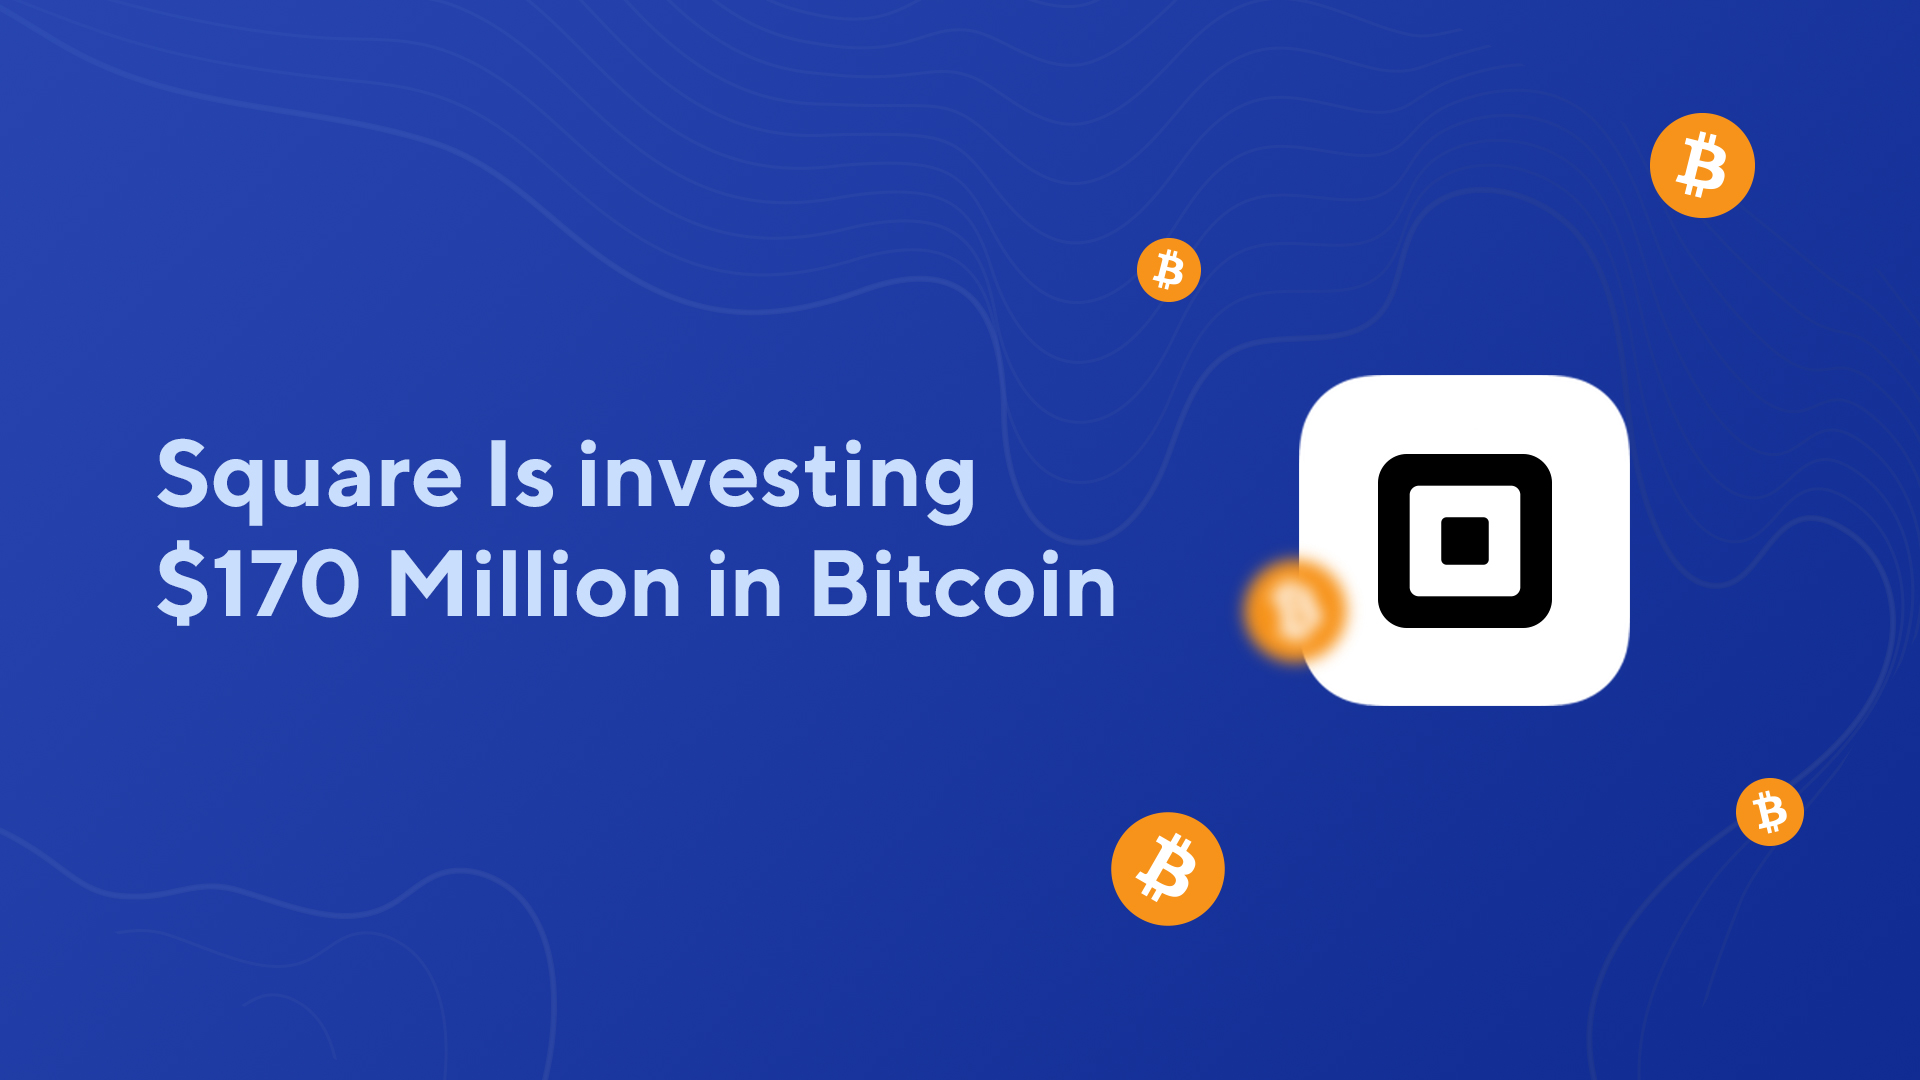 Square Is Investing $170 Million in Bitcoin